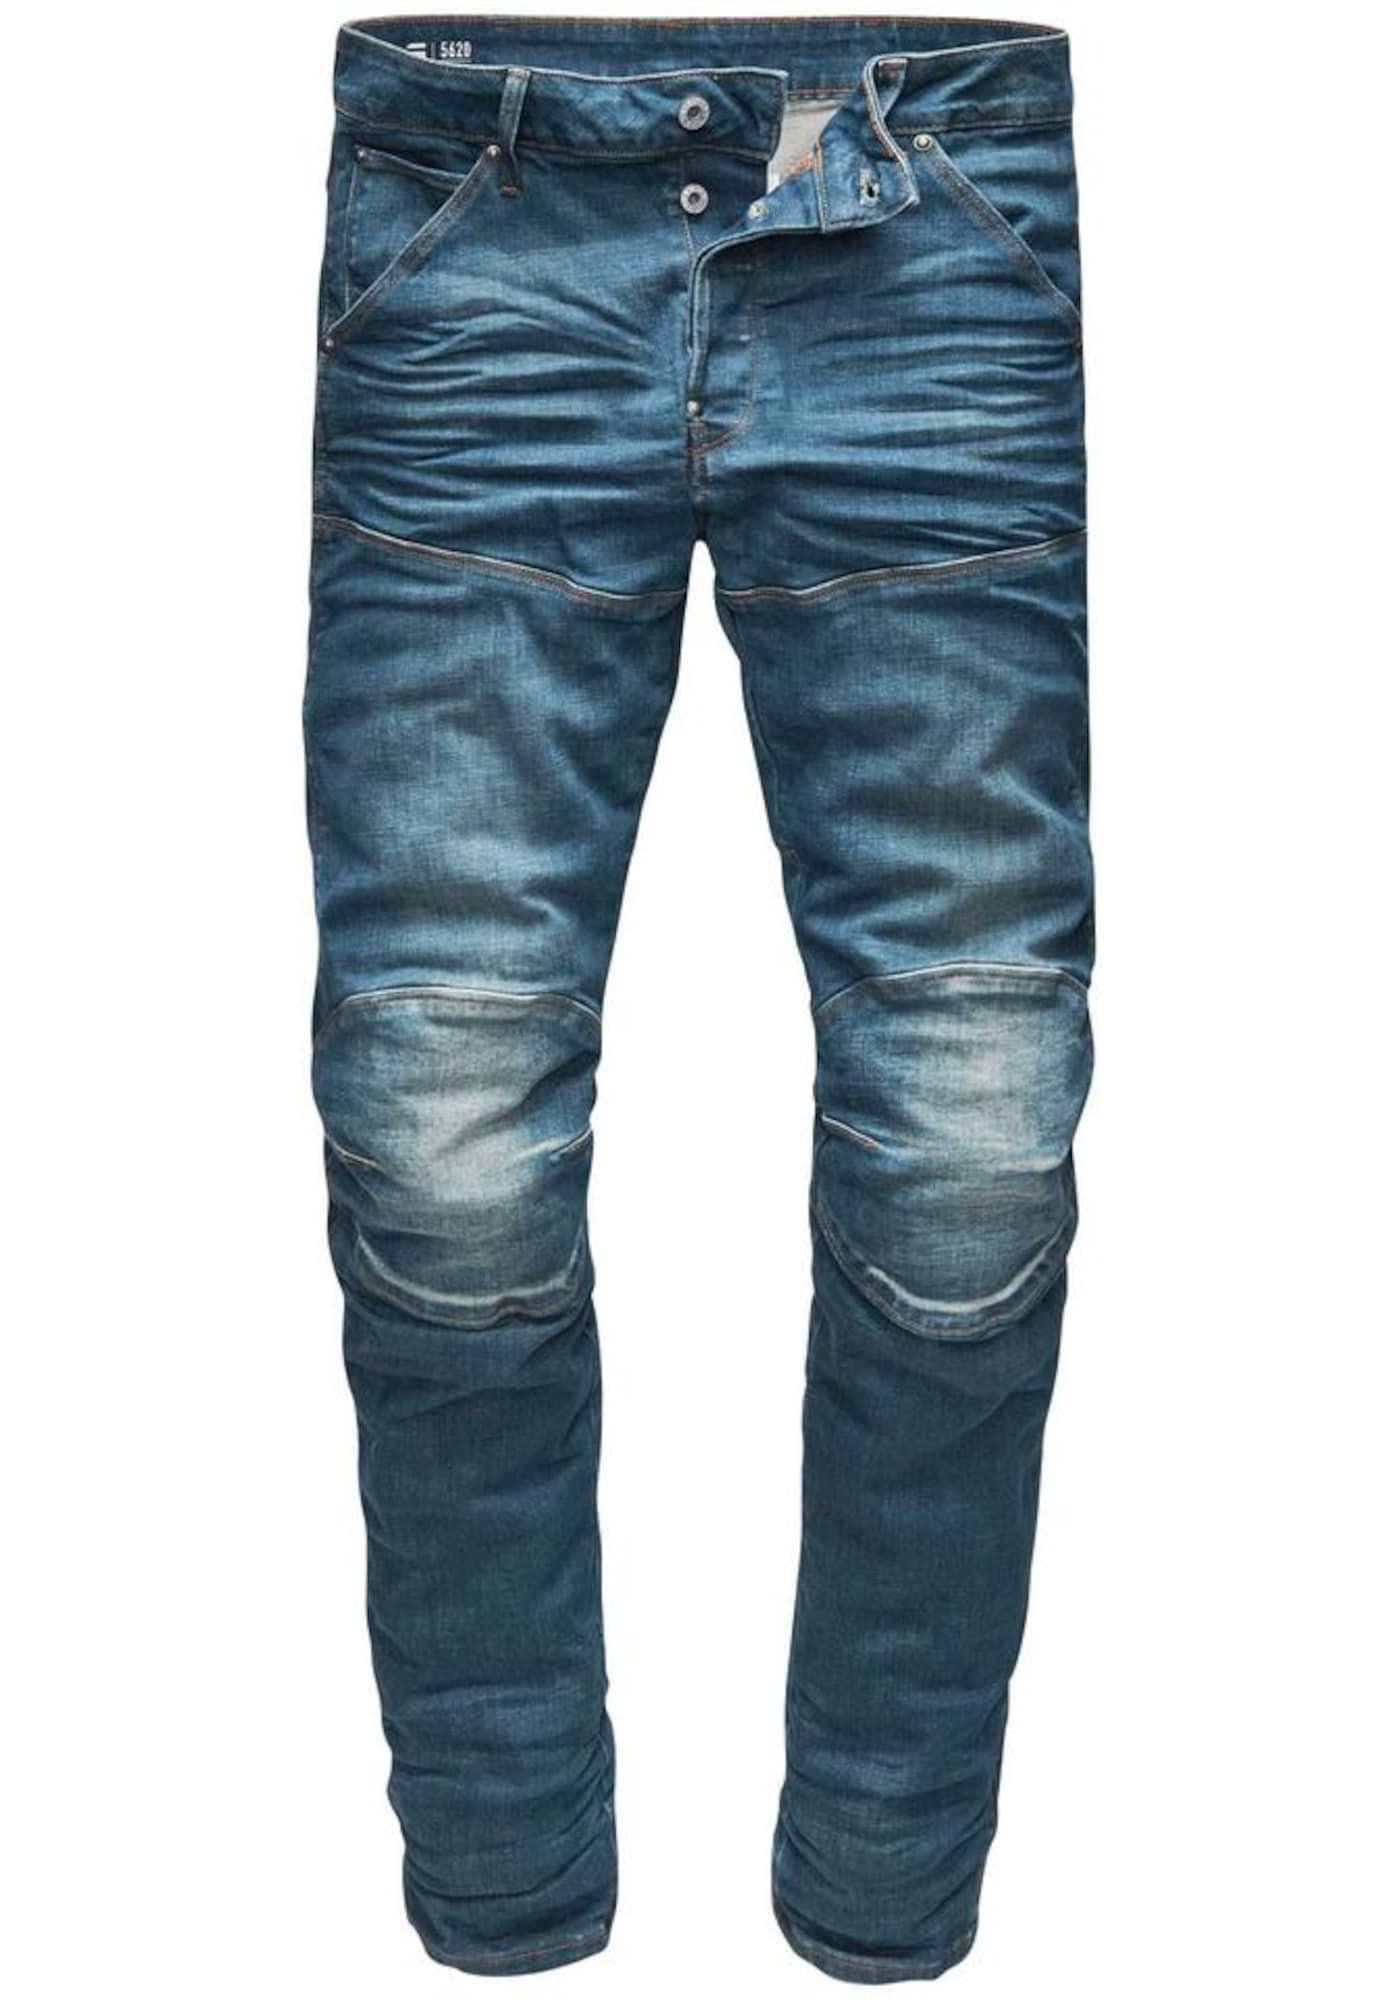 G-STAR RAW Heren Jeans Elwood 5620 3D Slim blue denim